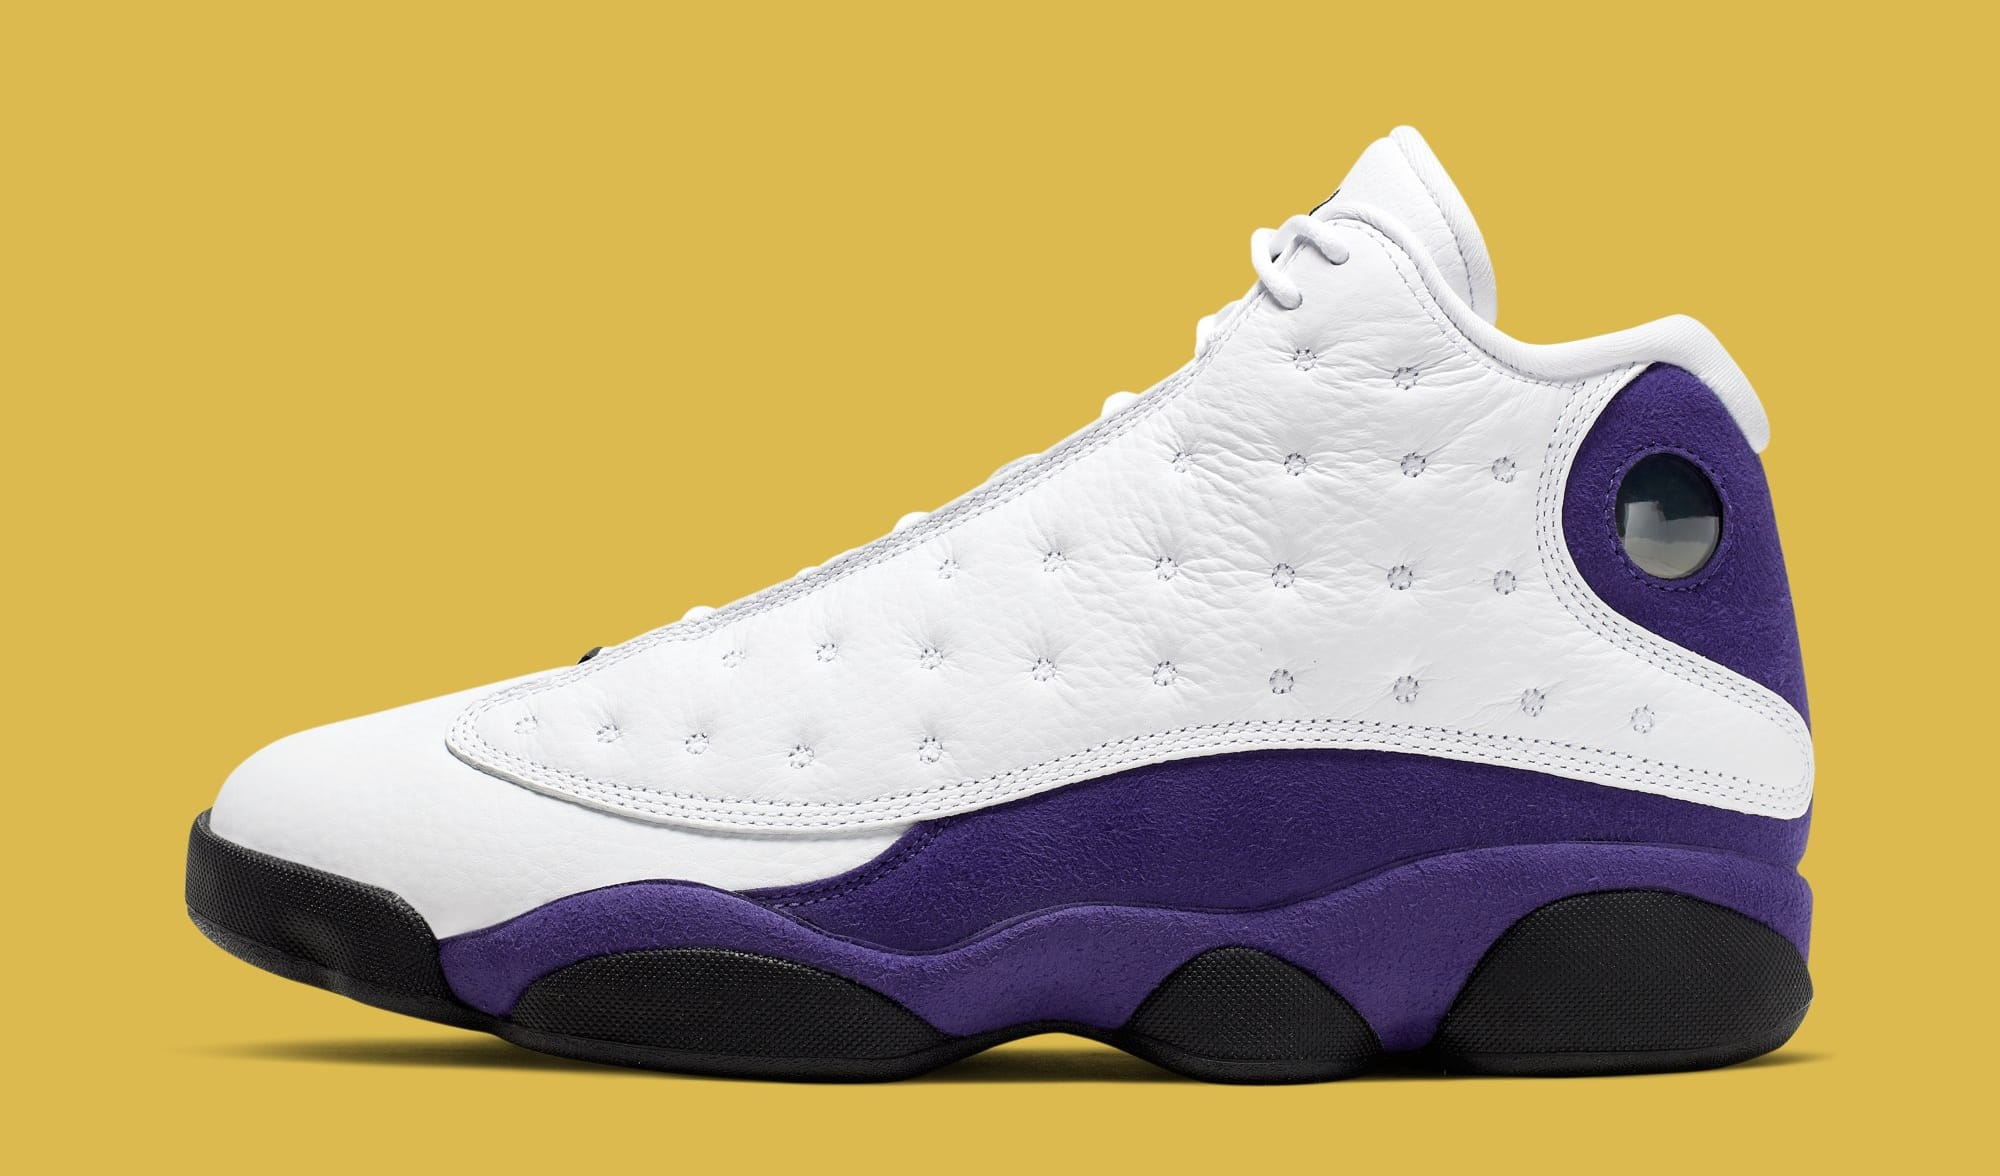 Air Jordan 13 'Lakers' White/Black/Court Purple/University Gold 414571-105 (Lateral)